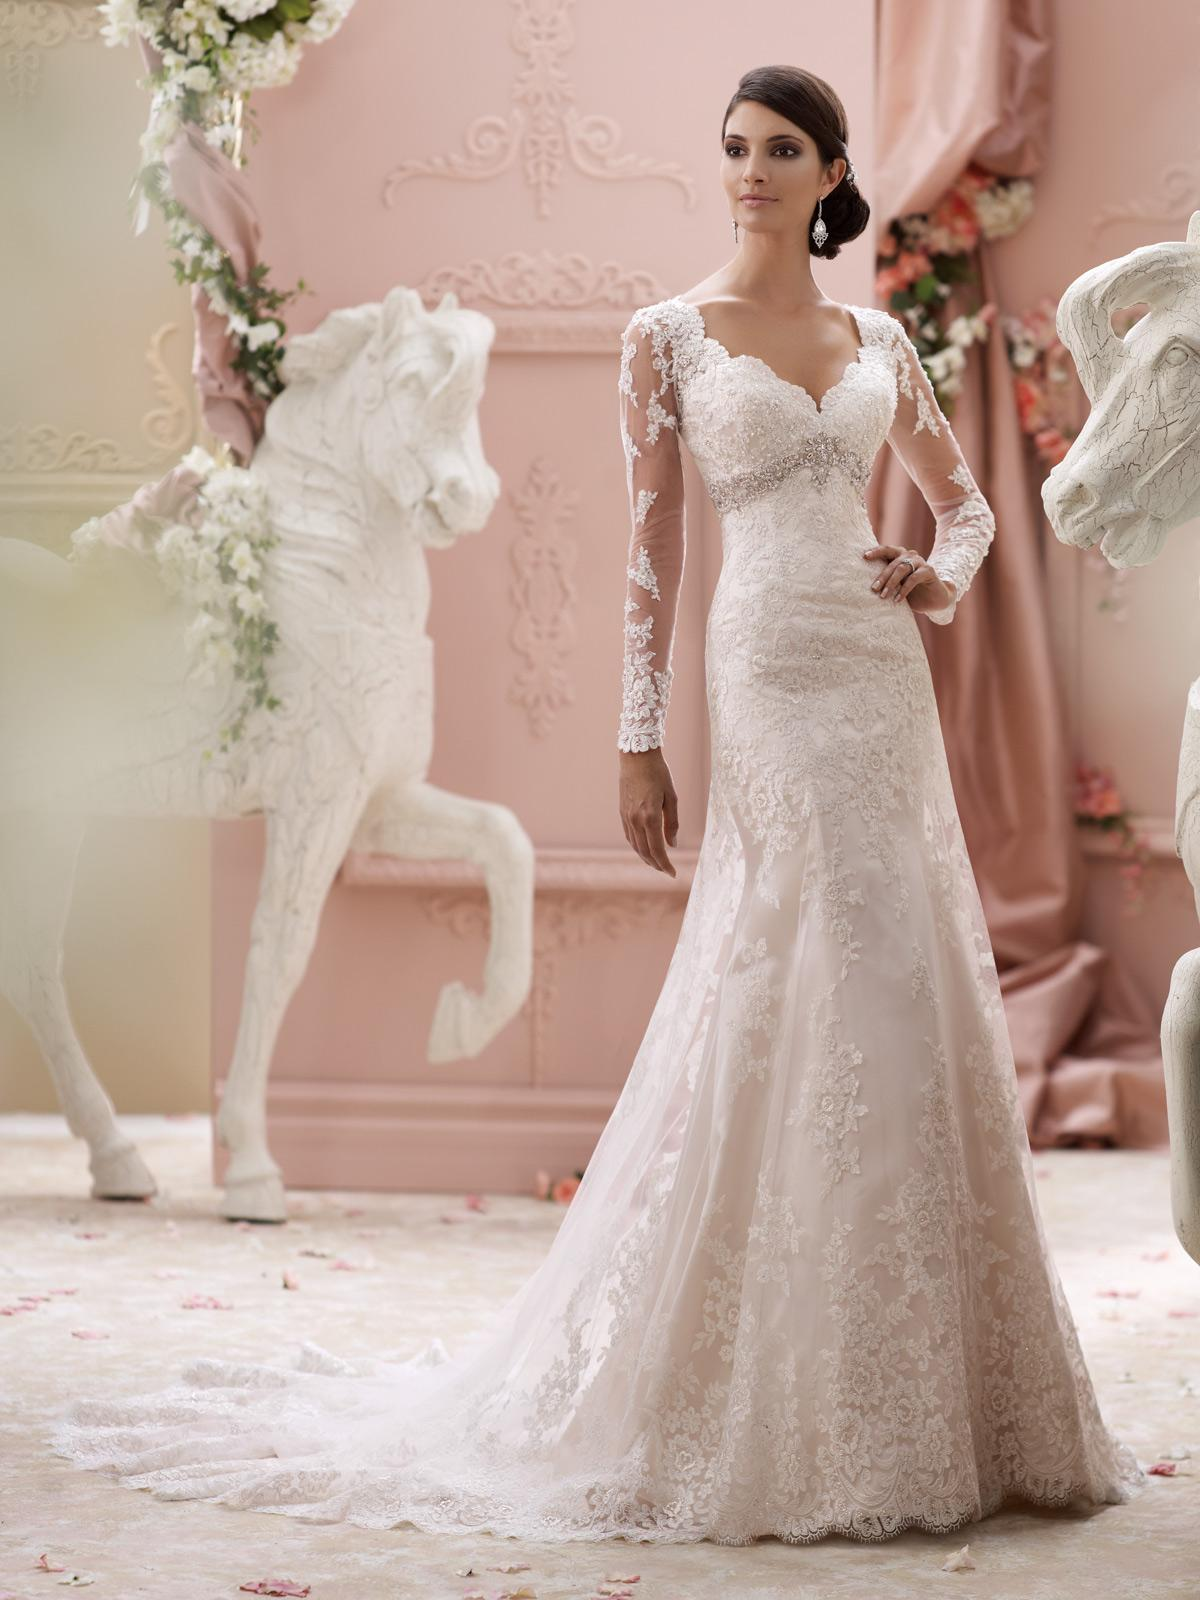 Wedding dress styles for brides and others poise passion for Wedding dress pick up style